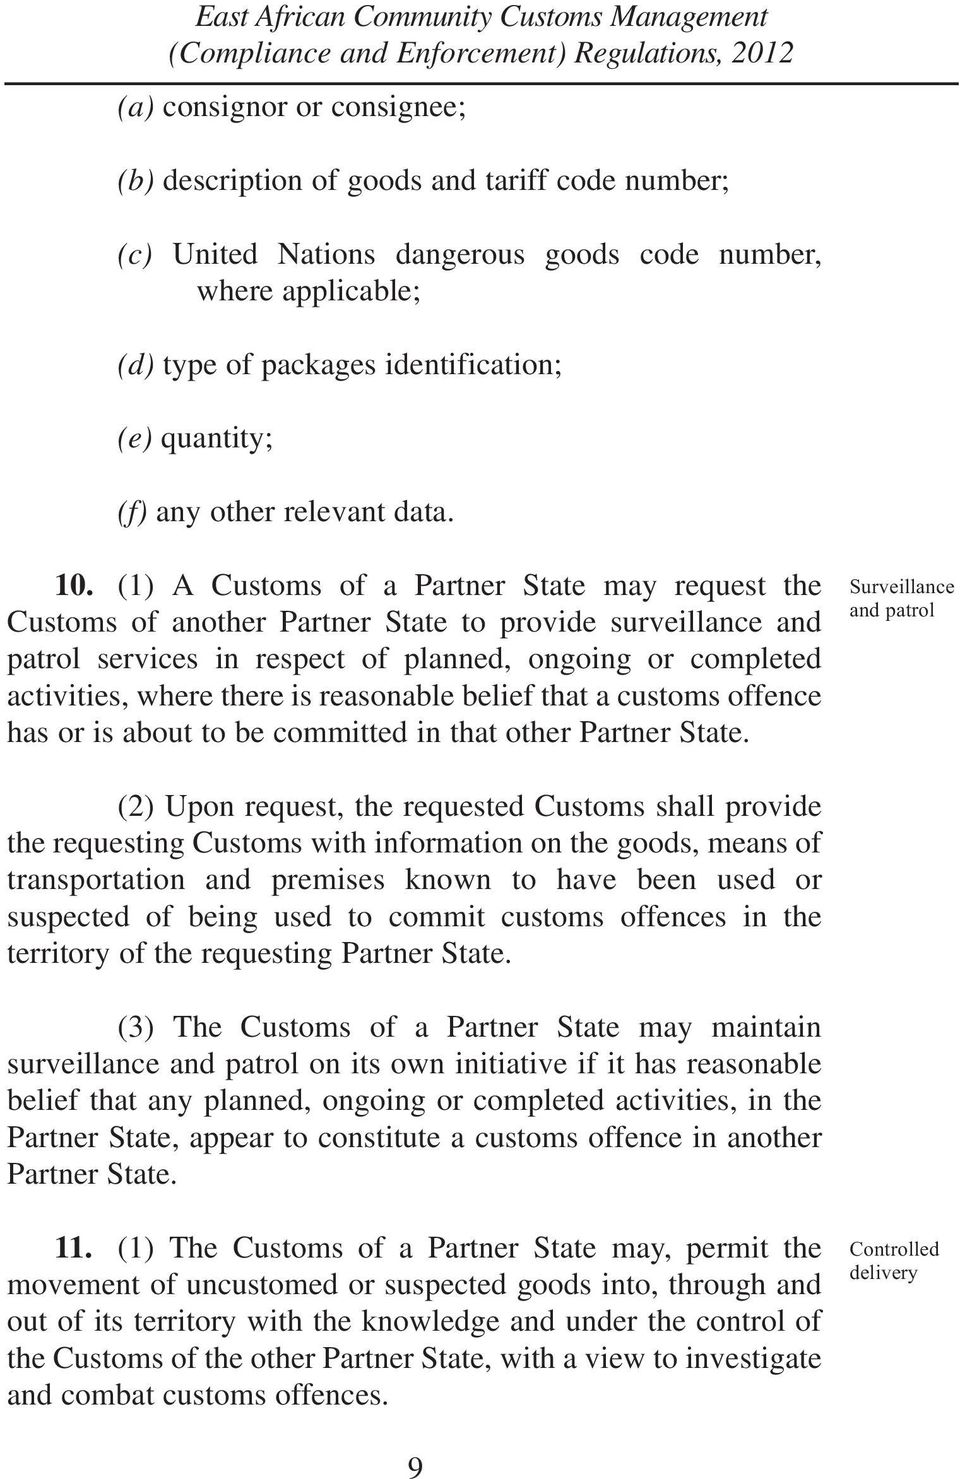 (1) A Customs of a Partner State may request the Customs of another Partner State to provide surveillance and patrol services in respect of planned, ongoing or completed activities, where there is